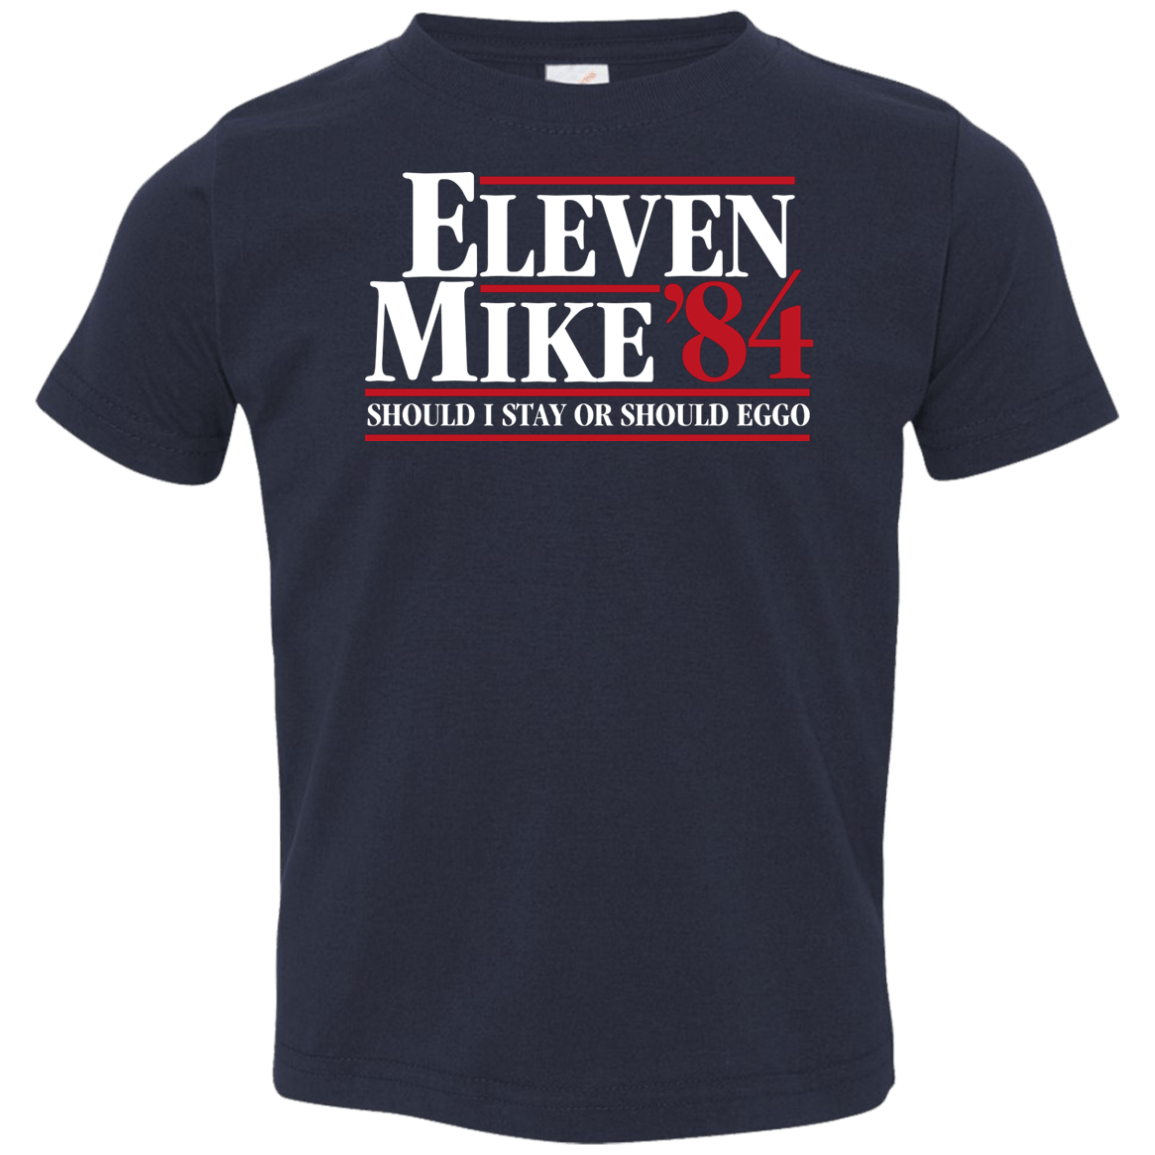 T-Shirts Navy / 2T Eleven Mike 84 - Should I Stay or Should Eggo Toddler Premium T-Shirt